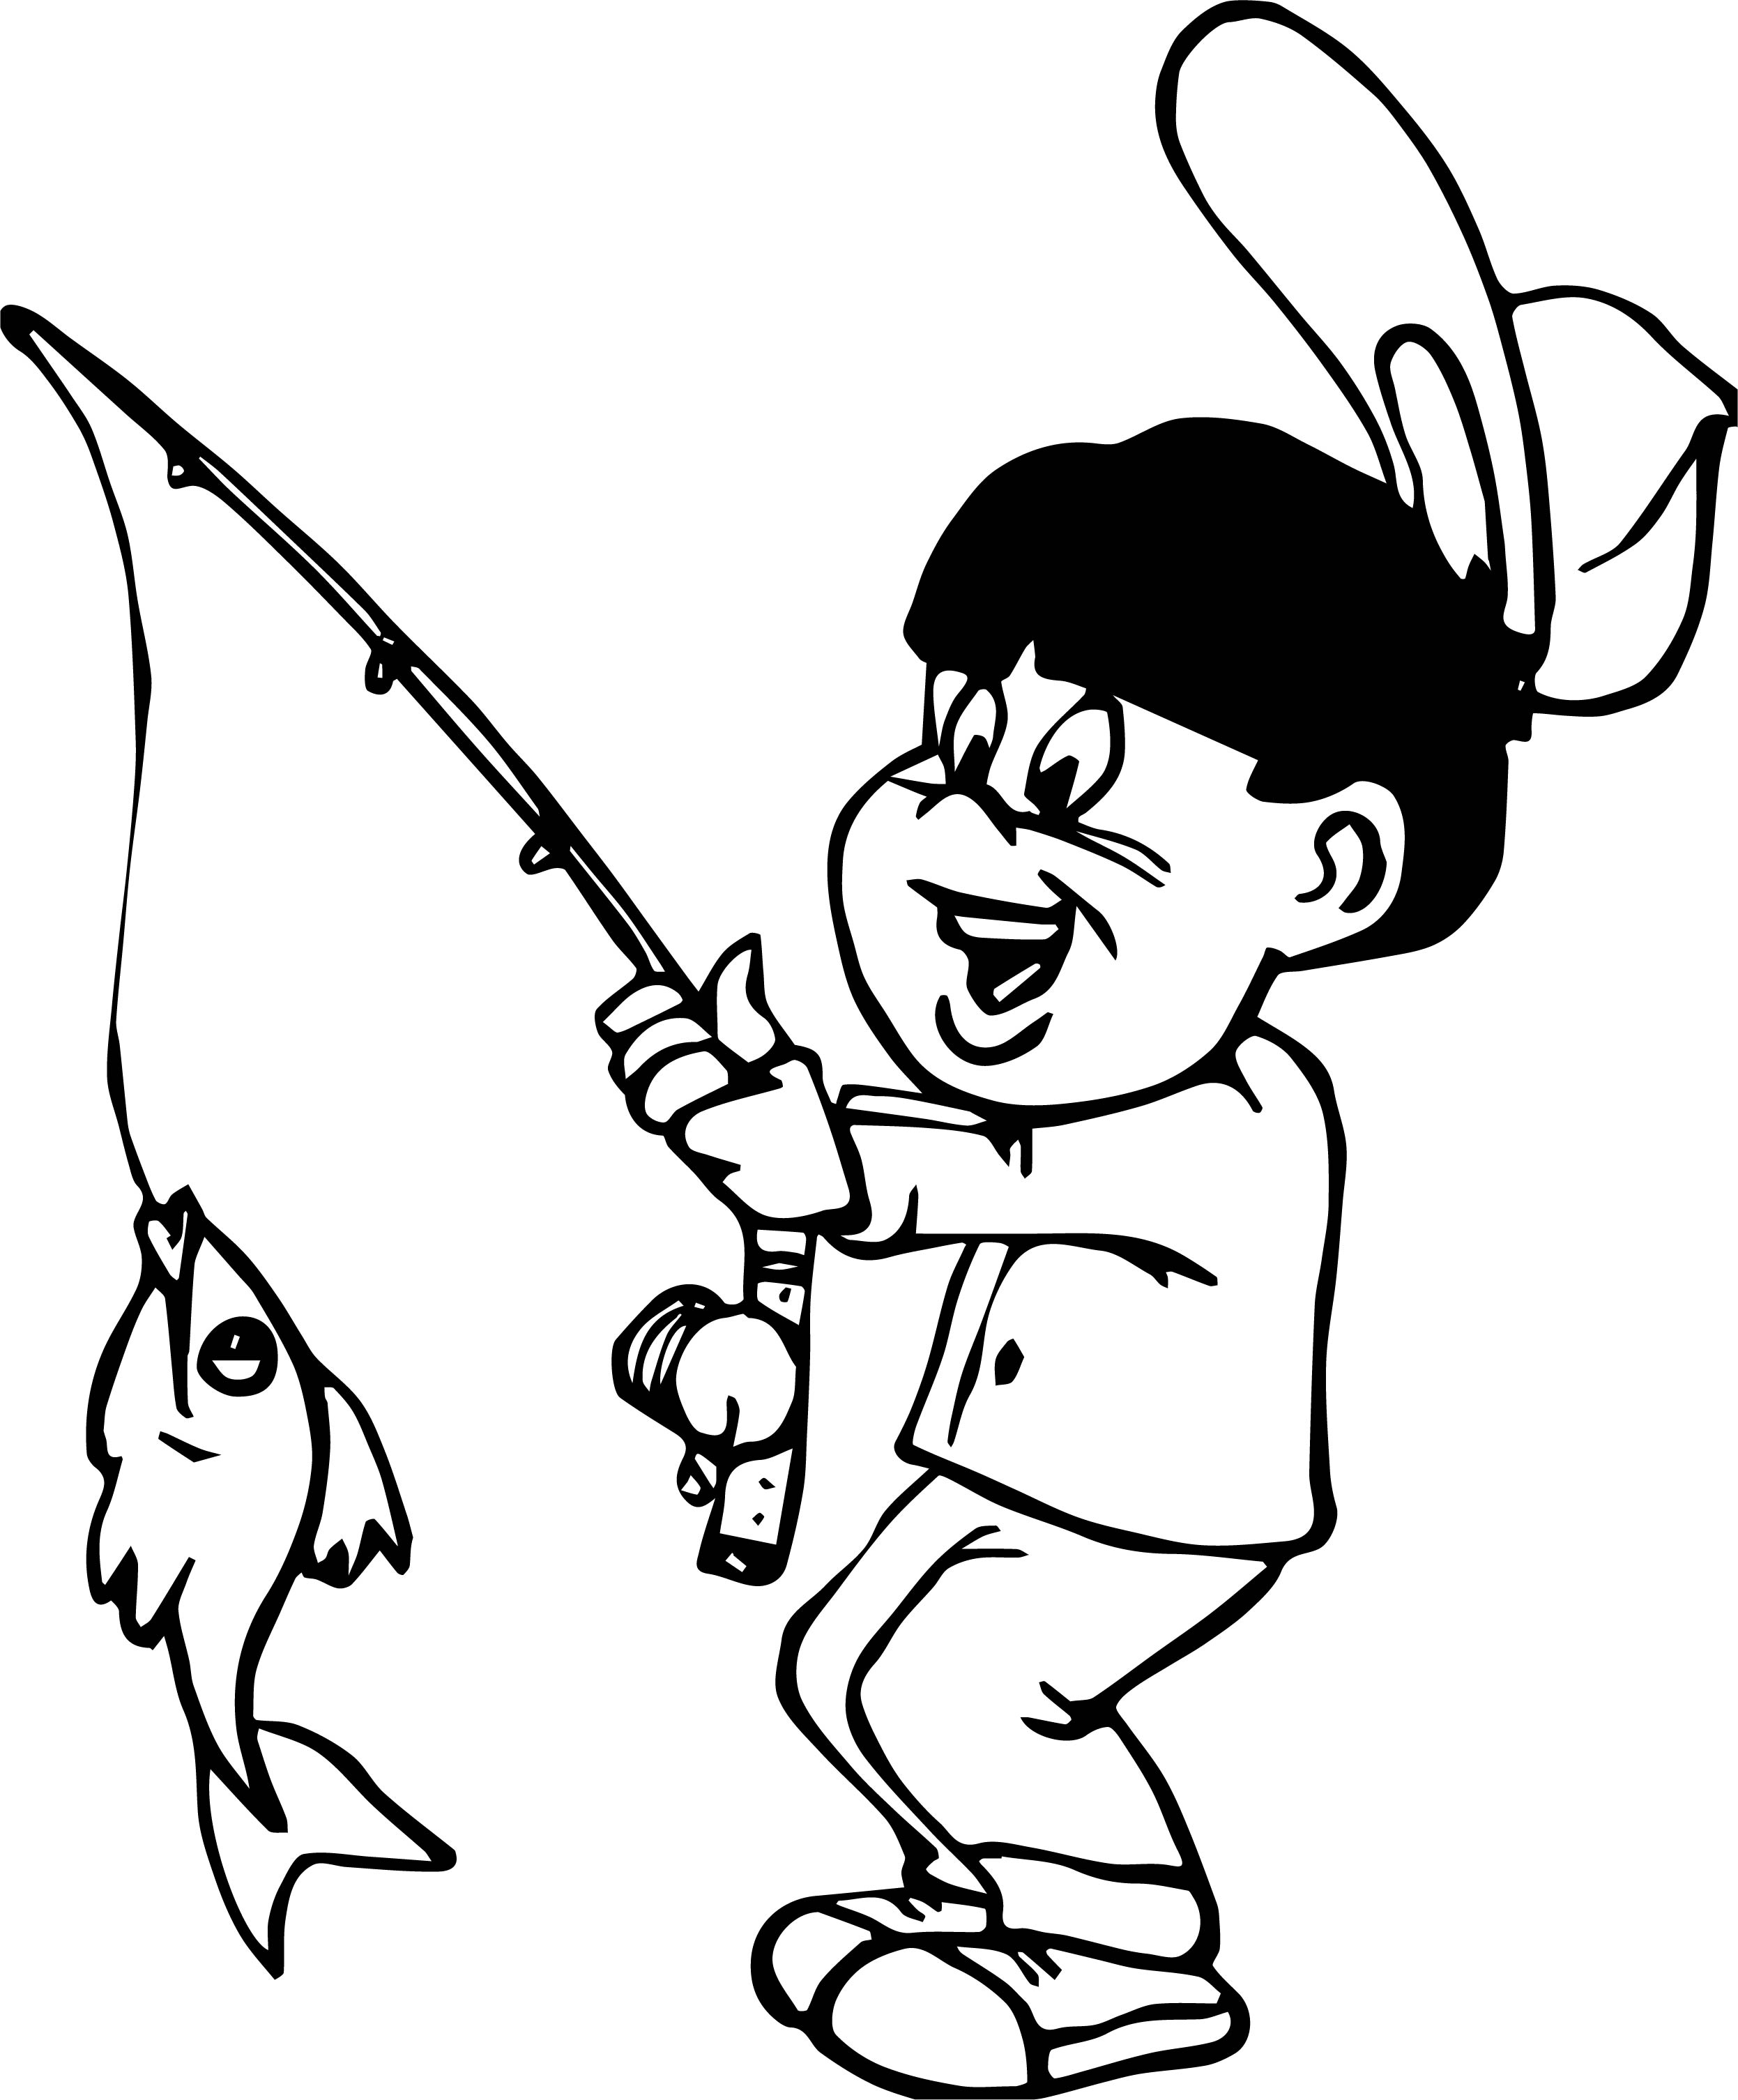 Catch Fish Boy Coloring Page